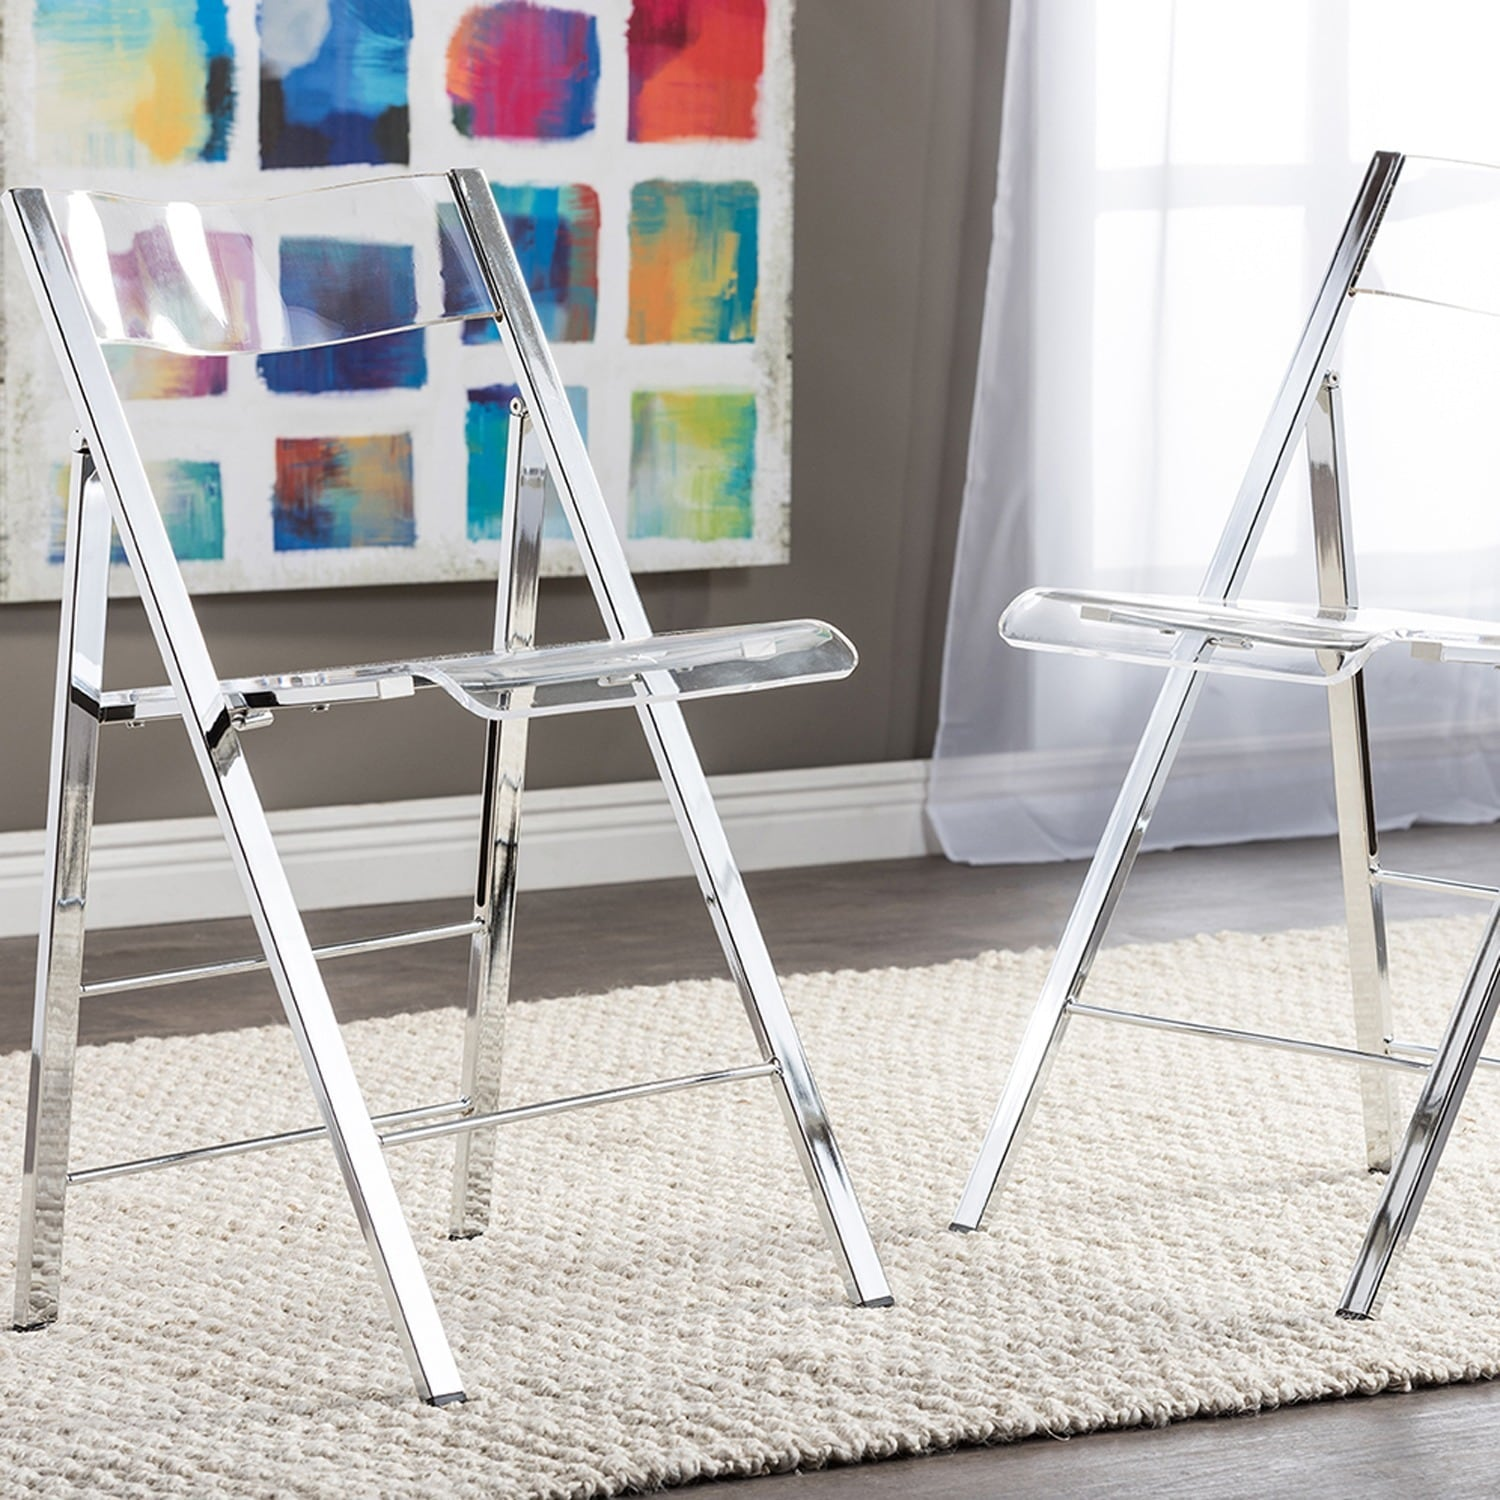 Acrylic Folding Chairs Shop Acrylic Folding Chairs Set Of 2 Free Shipping On